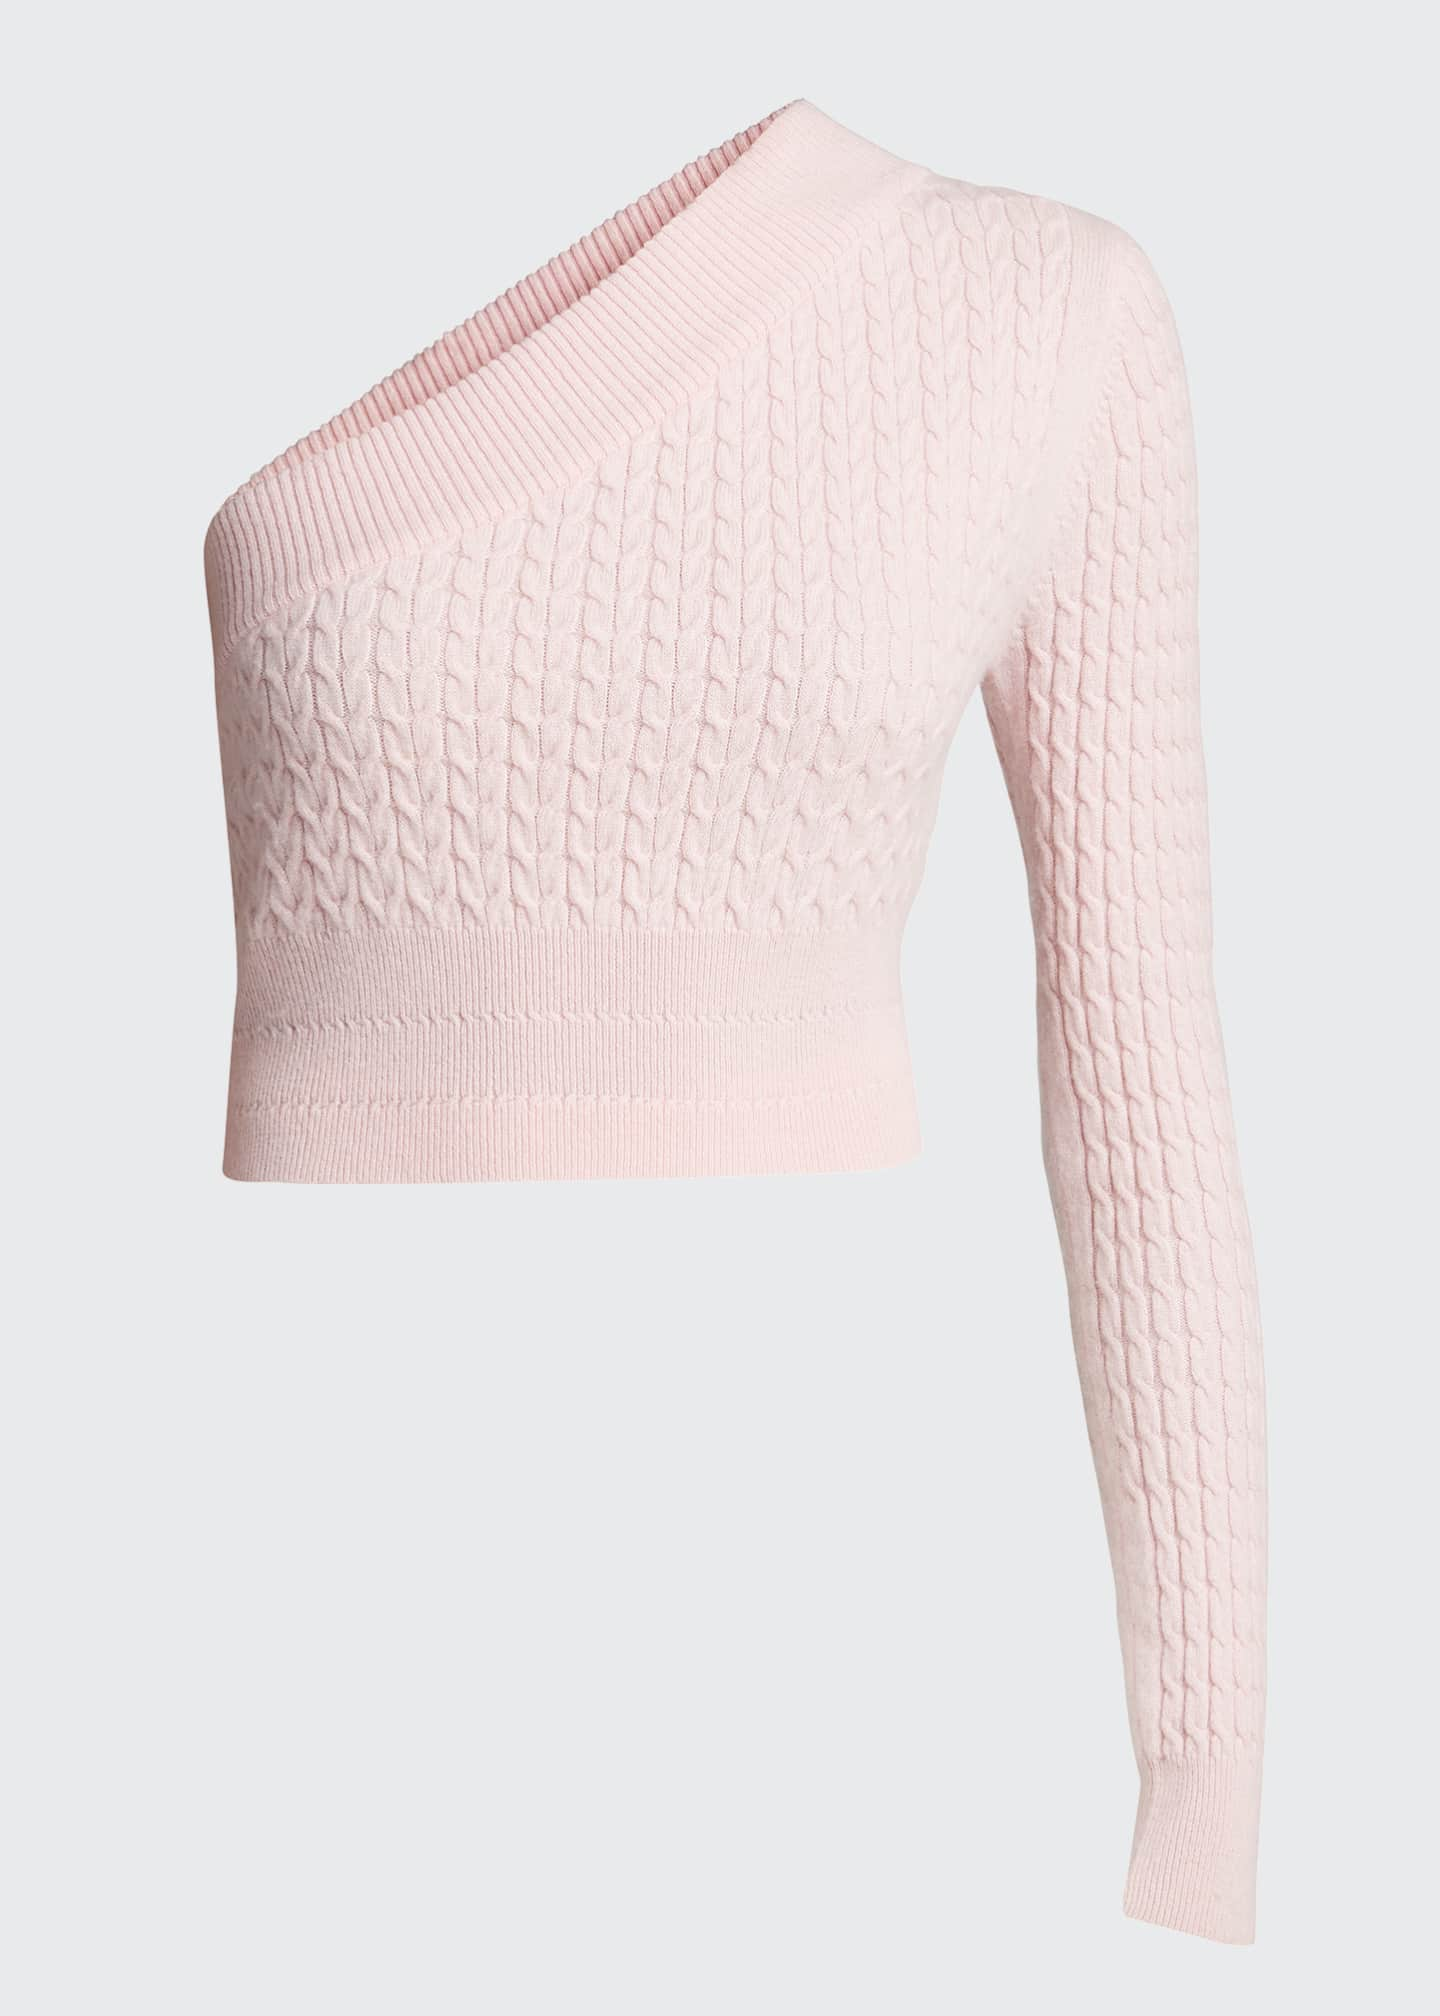 Image 5 of 5: Welling Cashmere One-Shoulder Crop Sweater